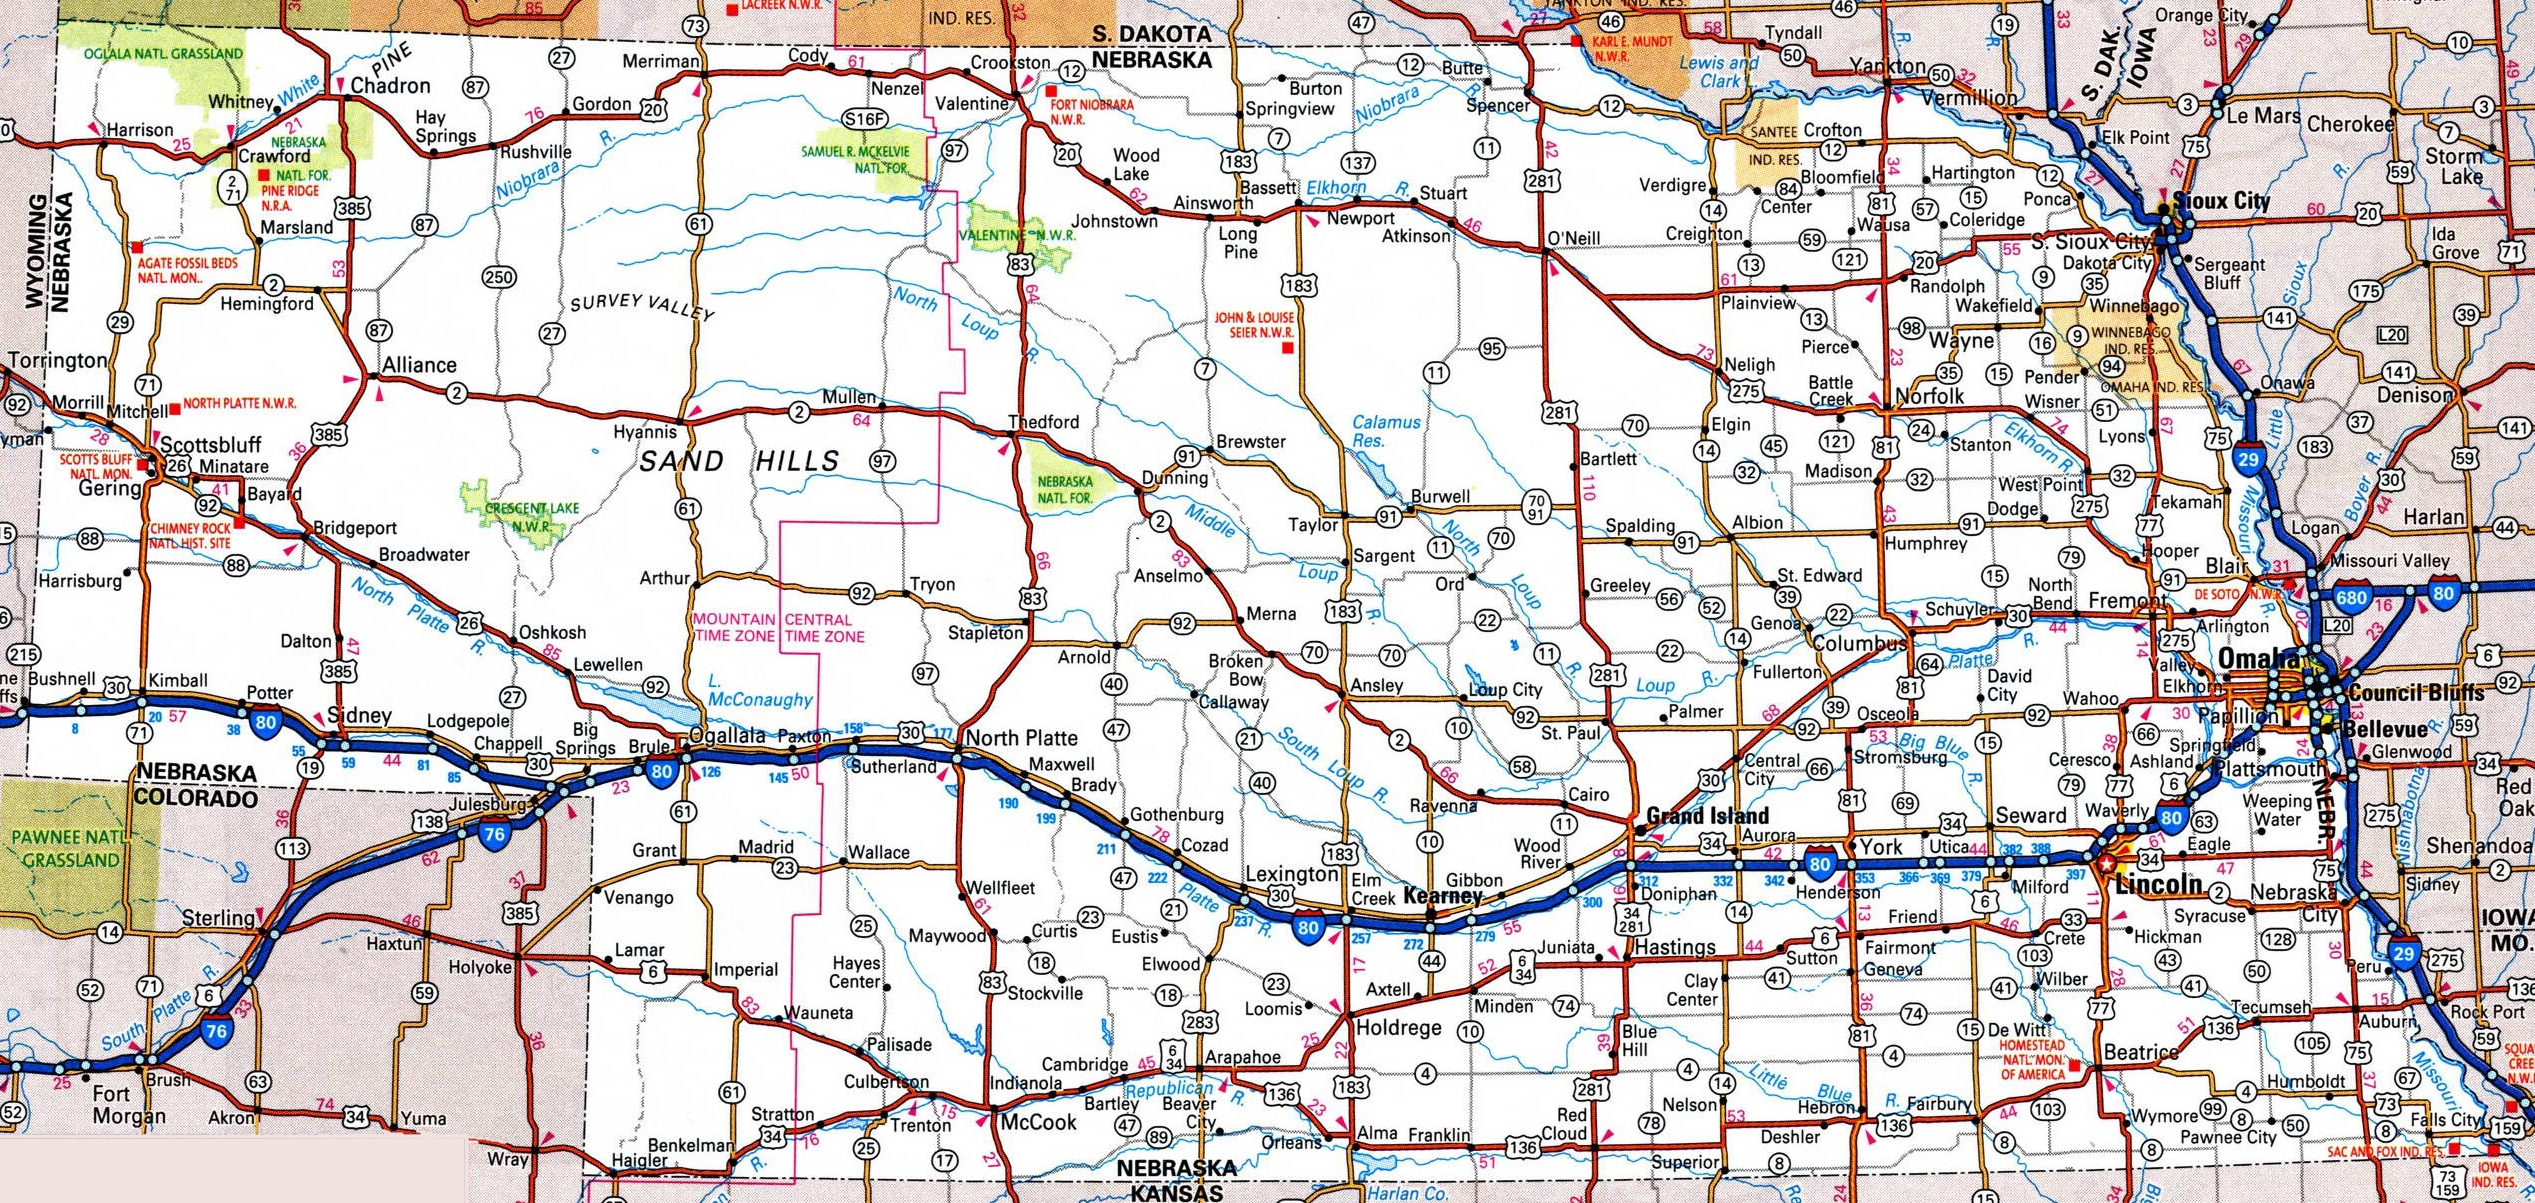 Nebraska Road Map - Roadmap of nebraska